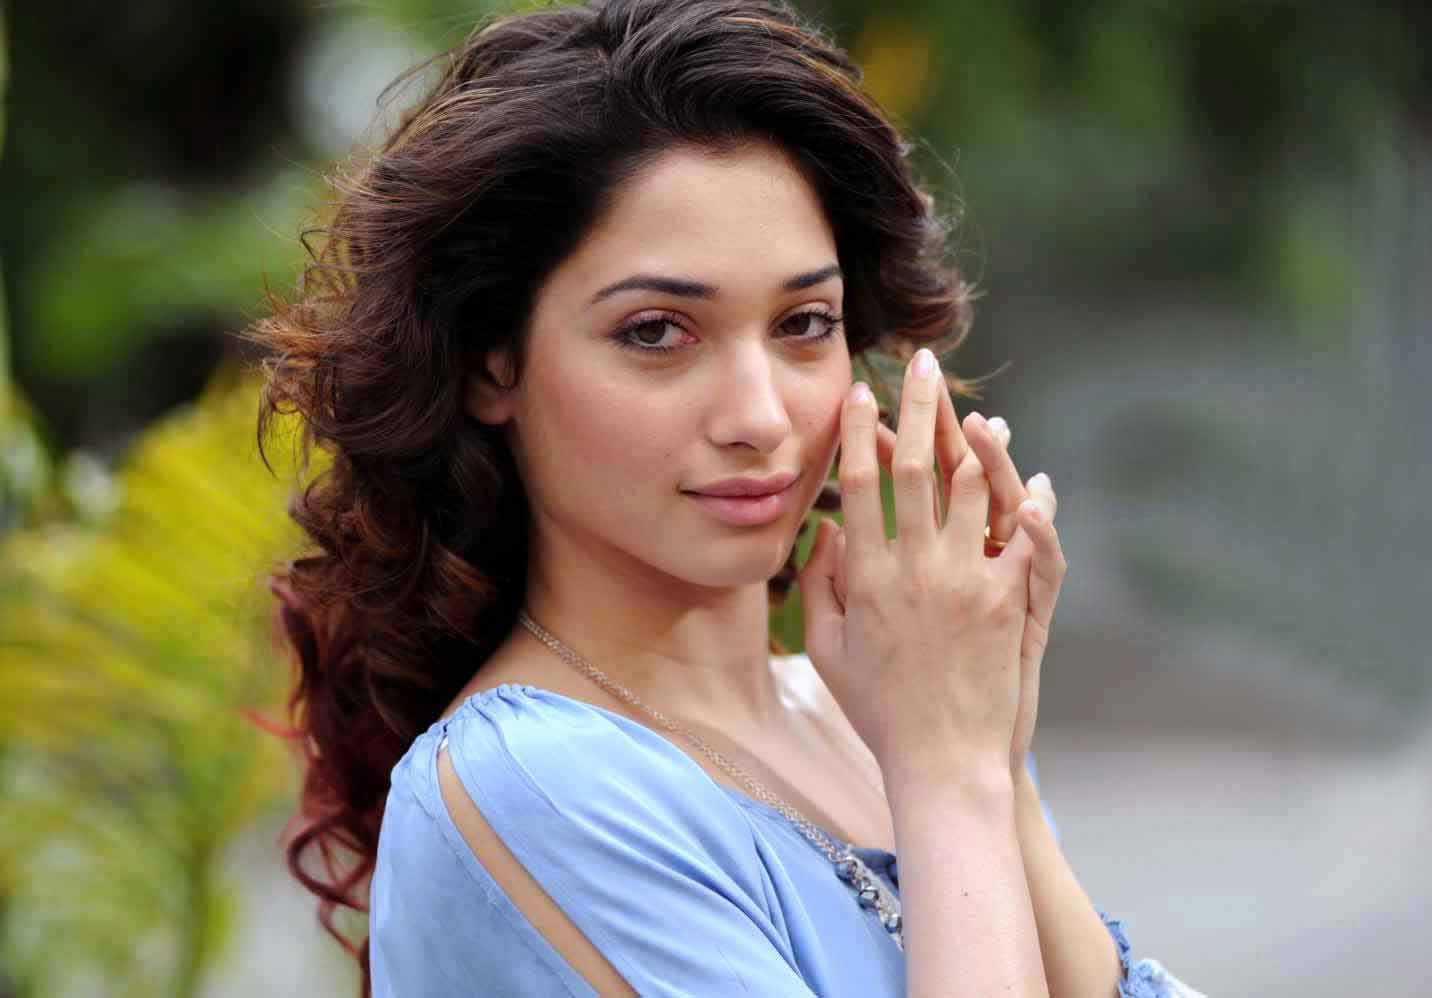 Tamanna bhatia wallpapers hd 2015 wallpaper cave - Actress wallpaper download for mobile ...